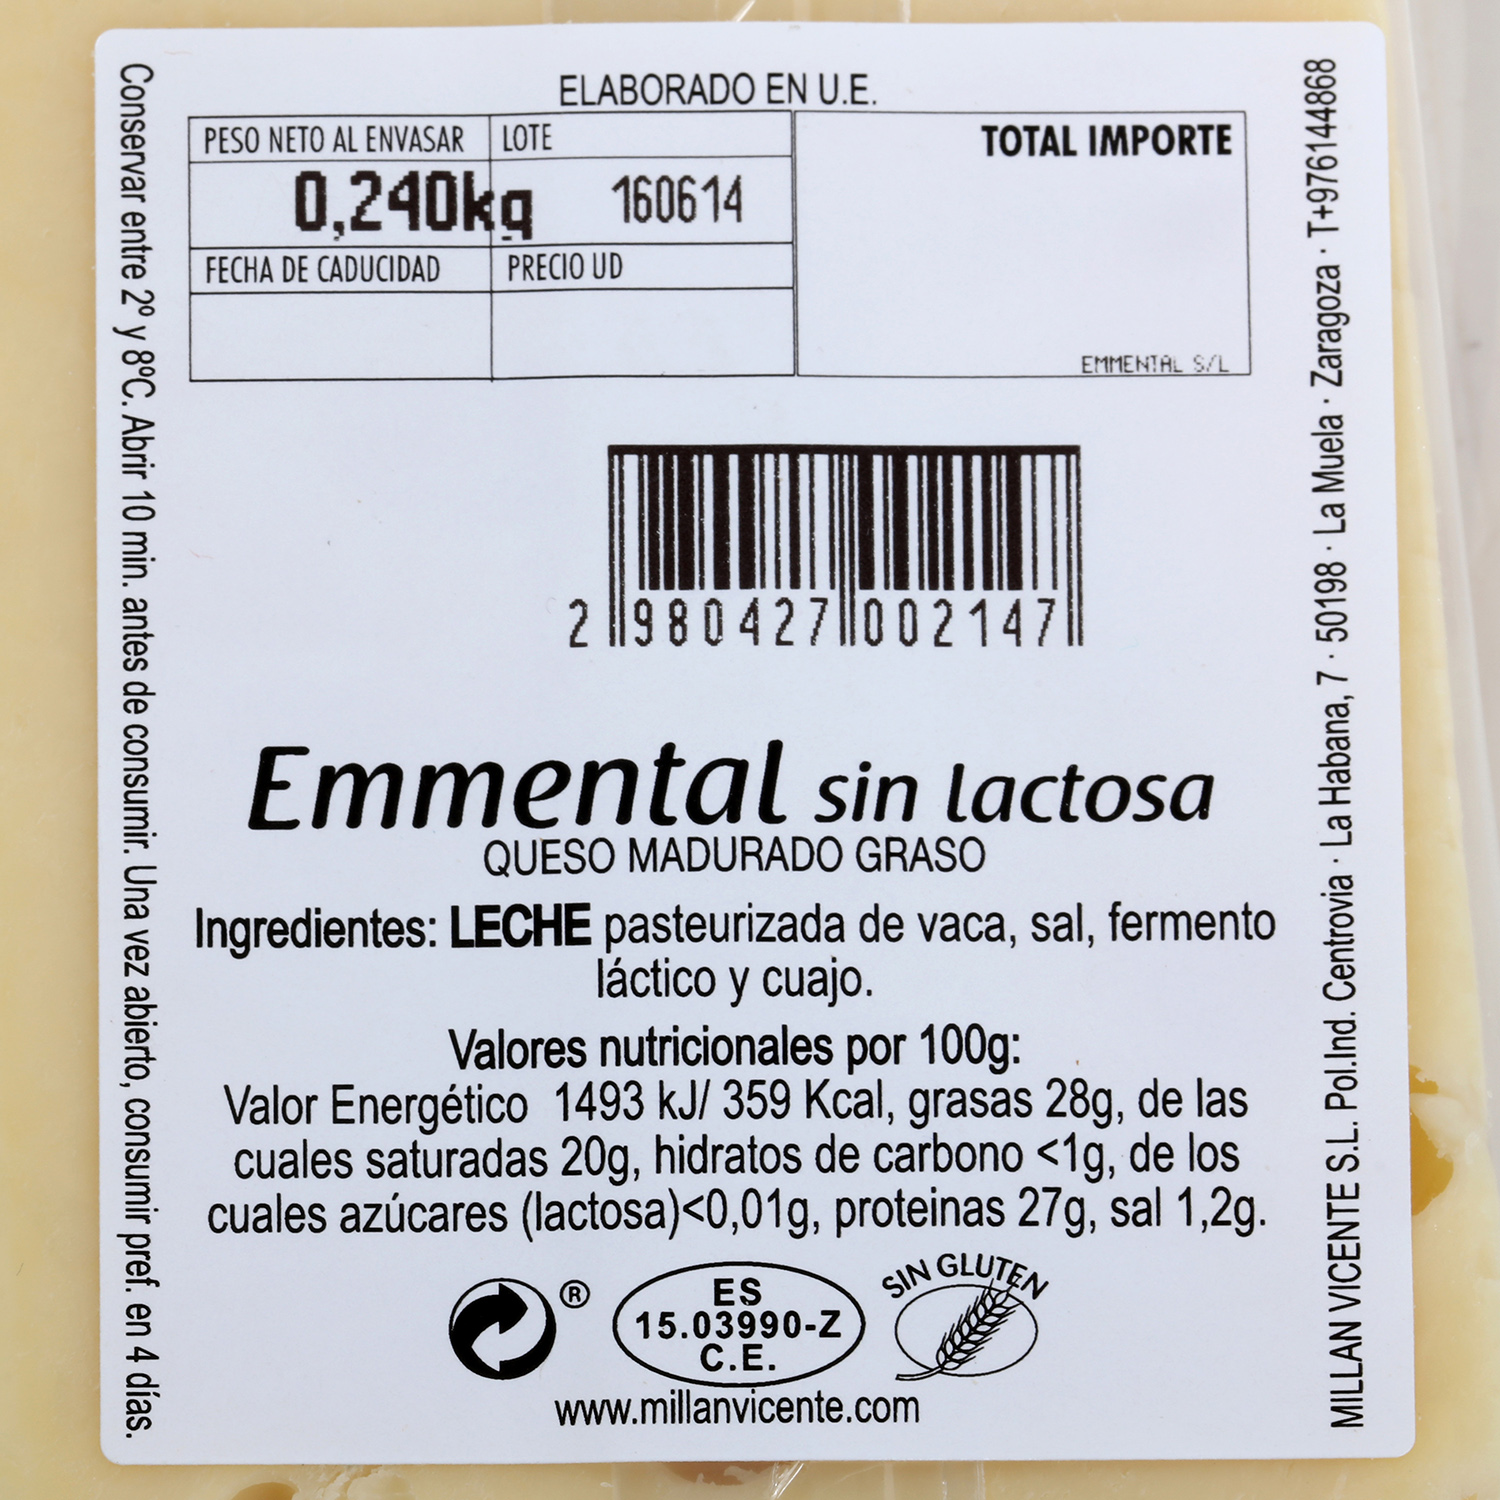 Queso emmental sin lactosa - 2